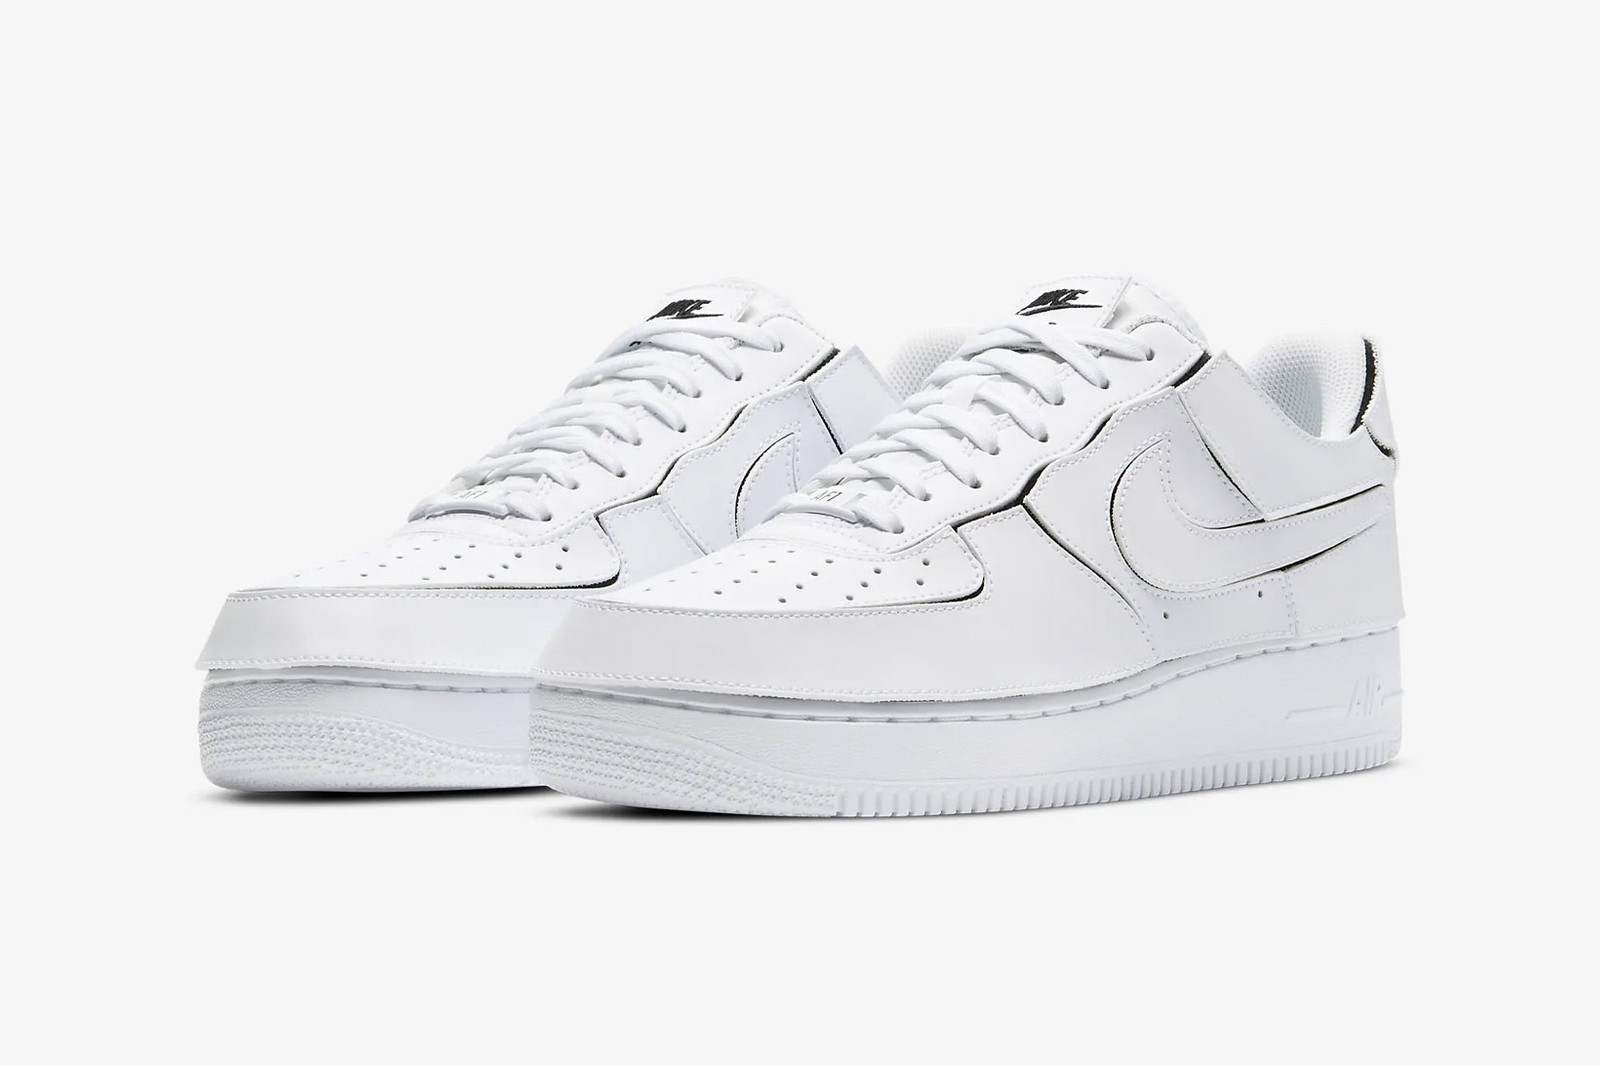 nike air force 1/1 customizable sneakers velcro overlays cosmic clay white black orange release info